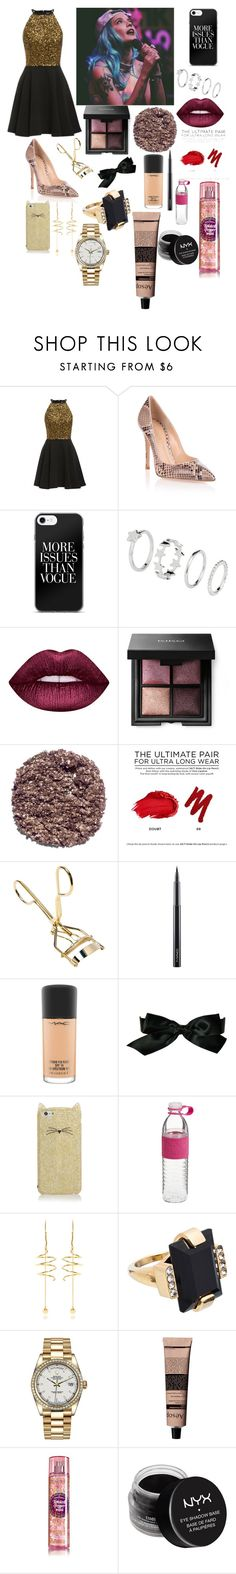 """""""At a Halsey concert💛"""" by ashleydirectioner2 ❤ liked on Polyvore featuring beauty, Gianvito Rossi, Lime Crime, Illamasqua, Urban Decay, MAC Cosmetics, Chanel, Kate Spade, E L L E R Y and Marni"""